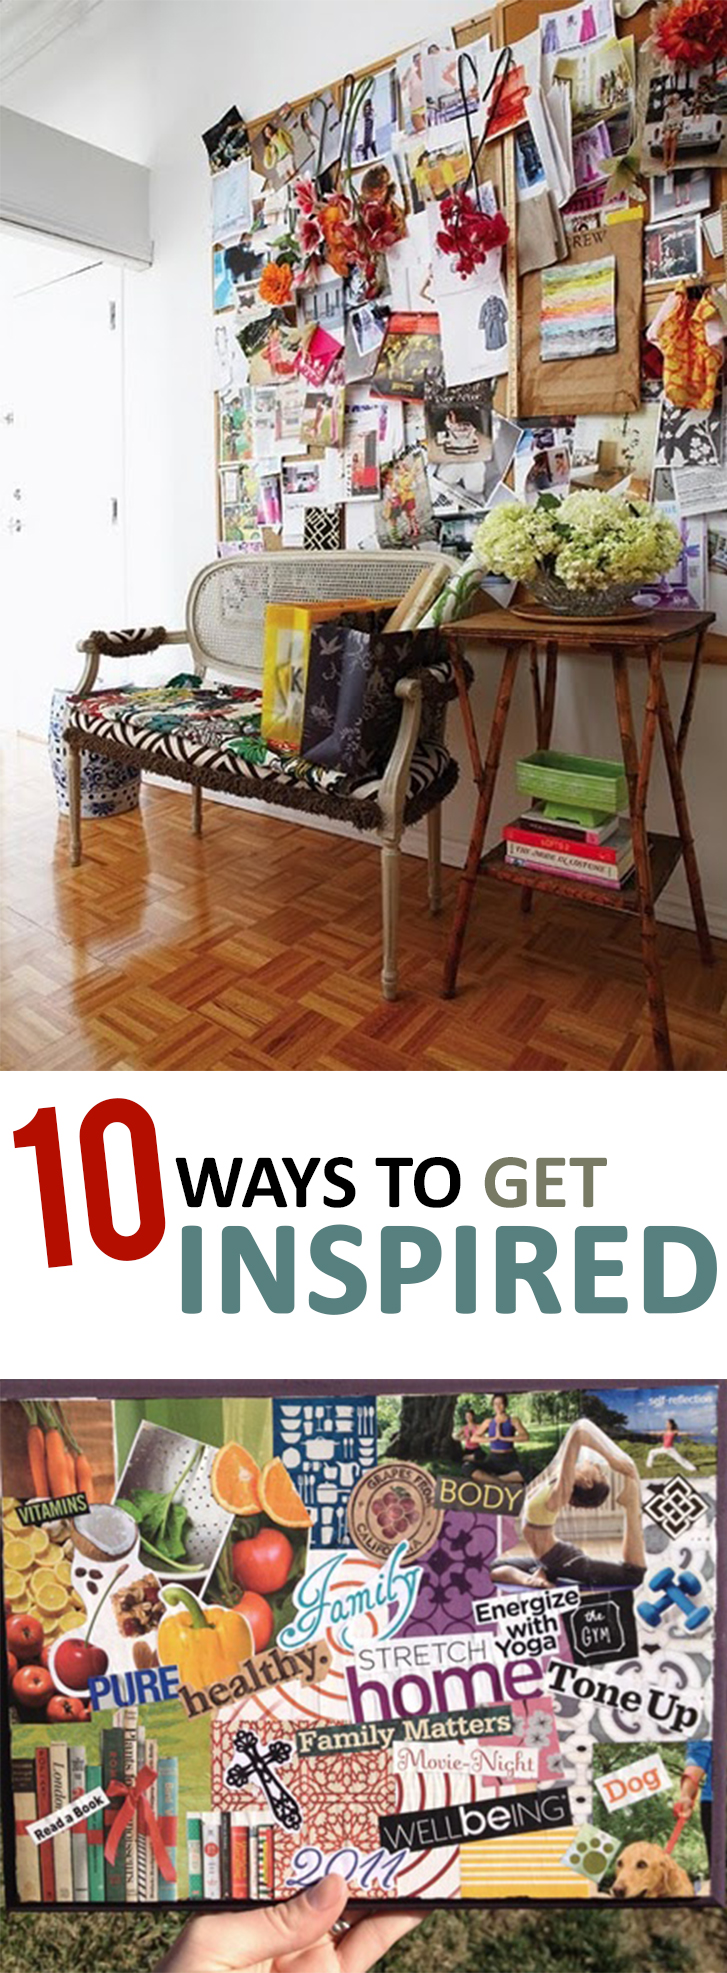 10 Ways to Get Inspired